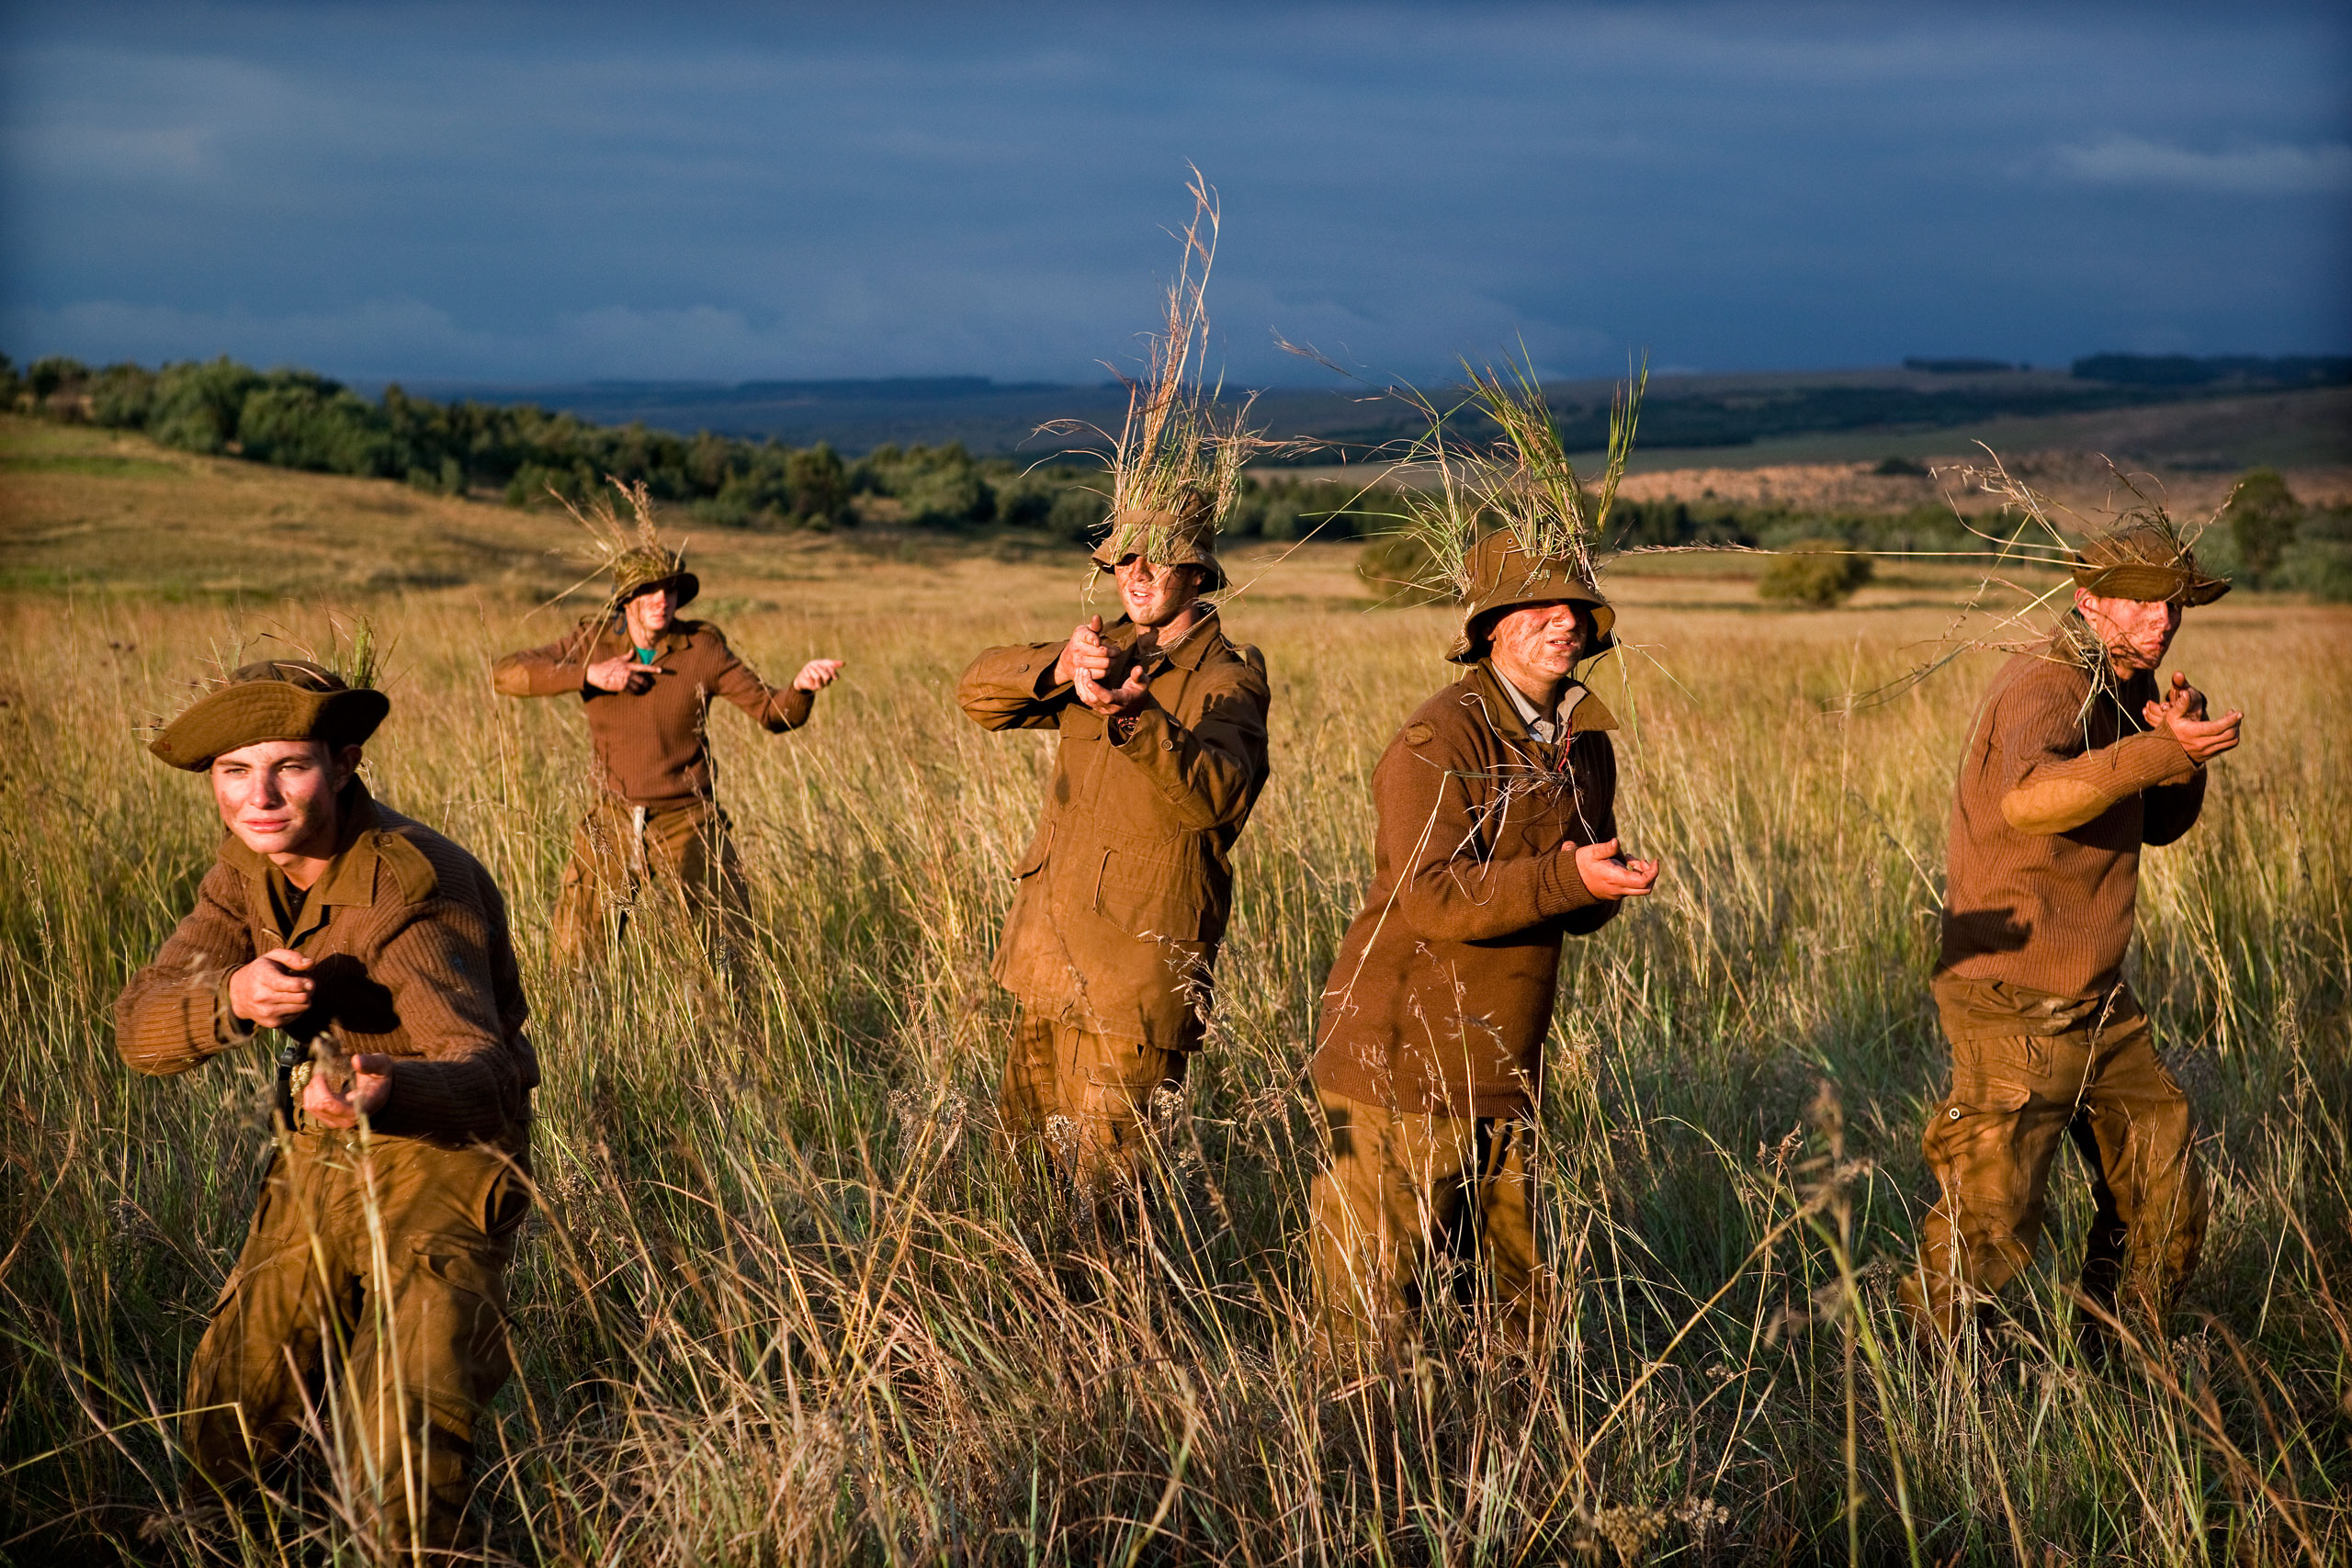 Afrikaner children practice how to use guns during one of the practices at the camp.